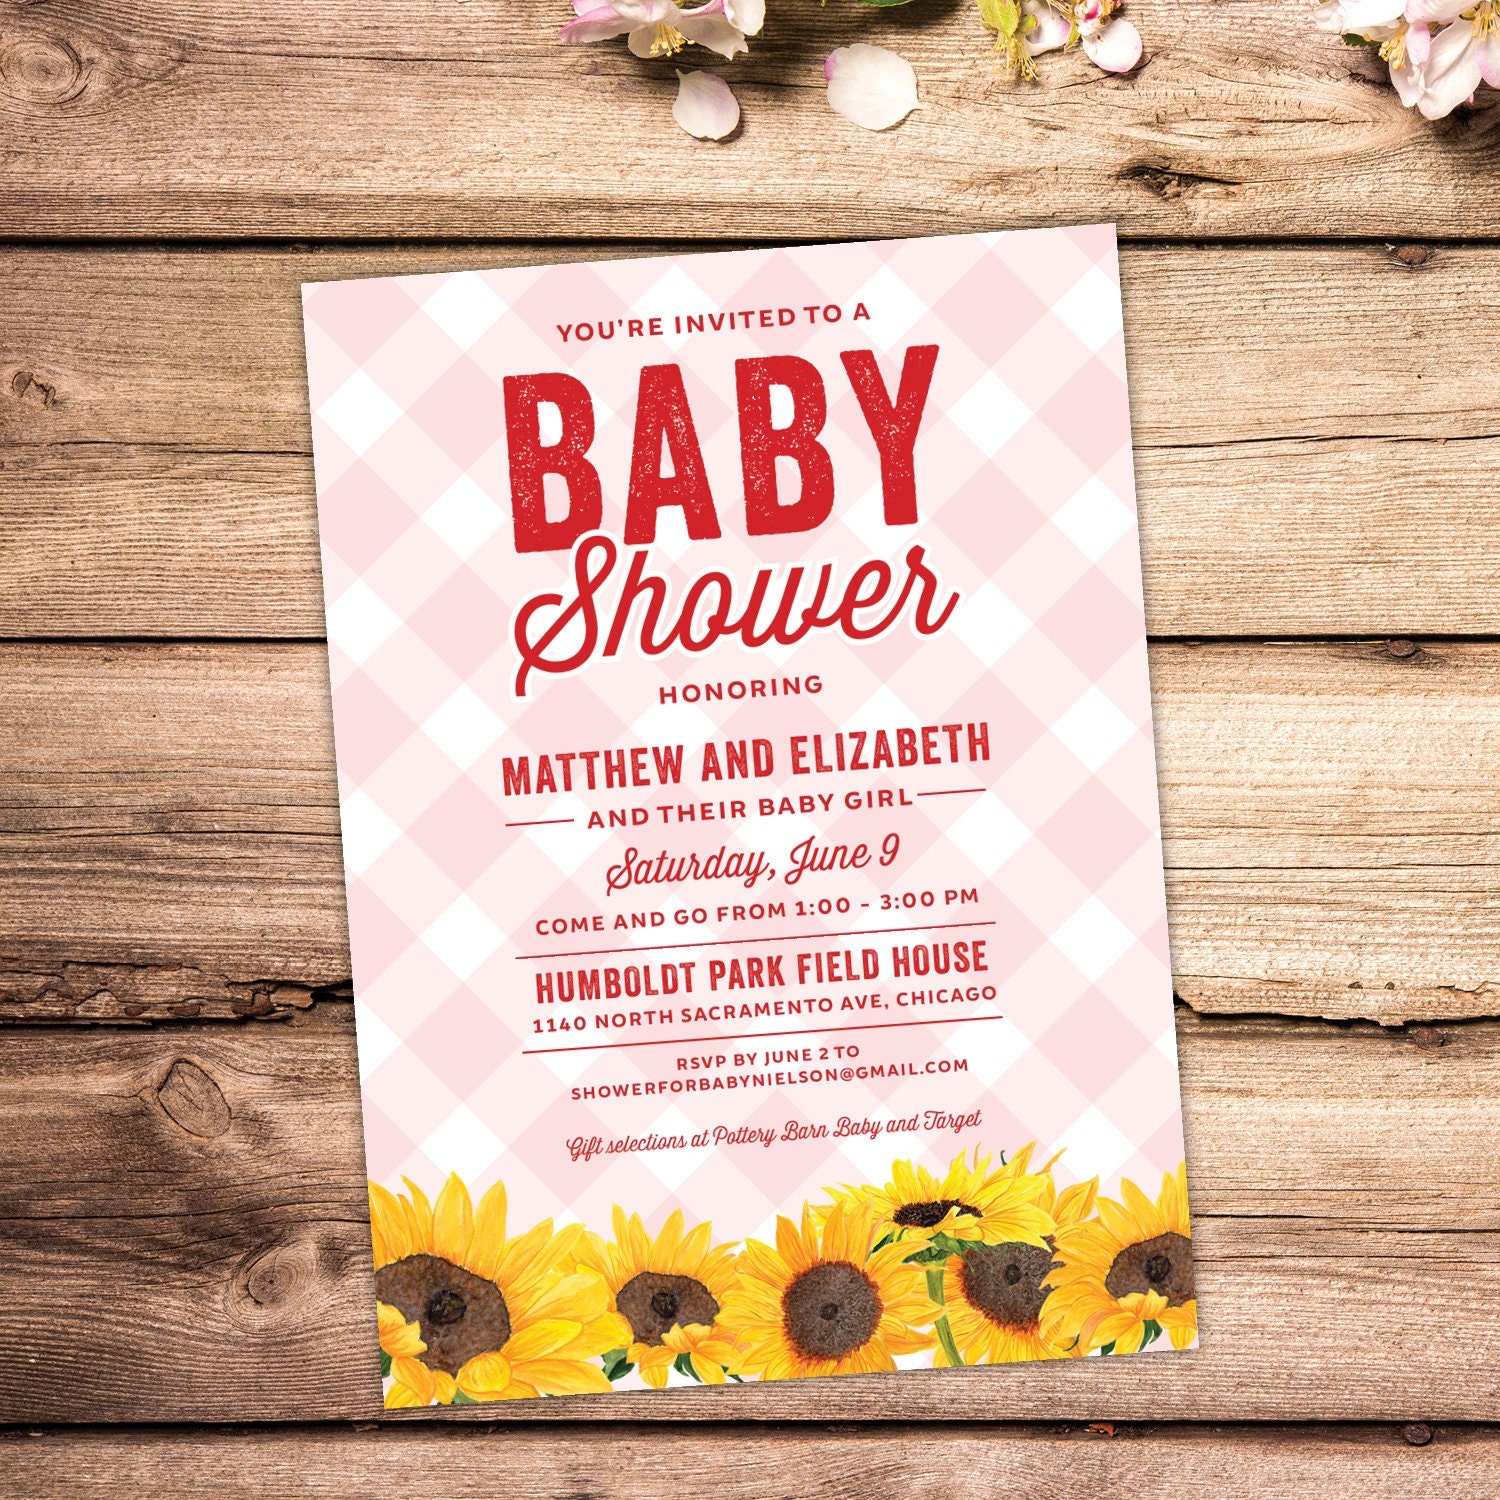 Baby Shower Invitation Pink Gingham with sunflowers Picnic | Etsy